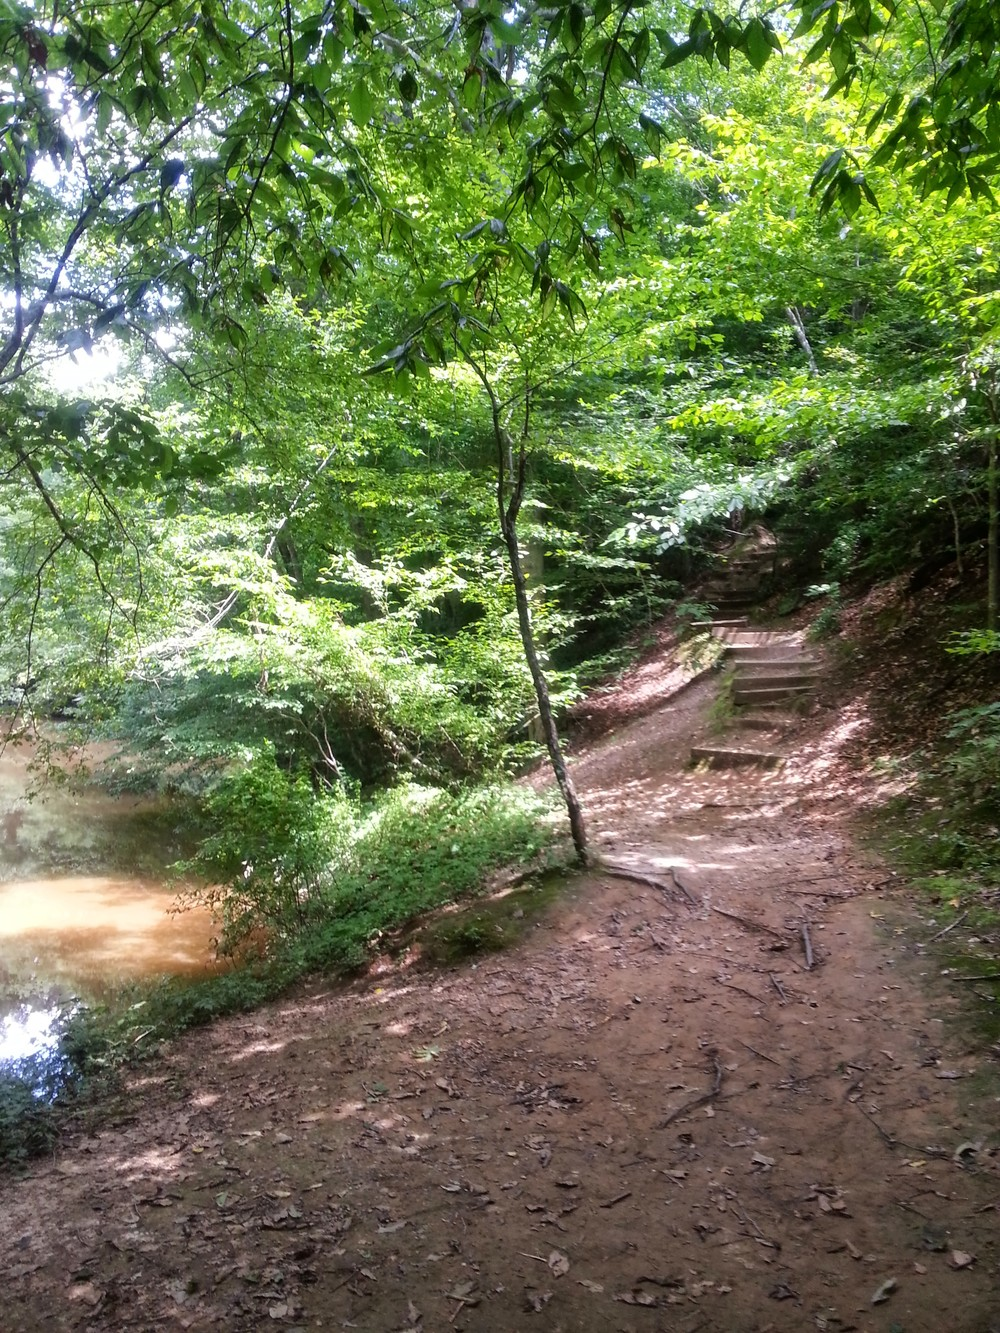 The trail slips away from the river via an unassuming set of stairs.